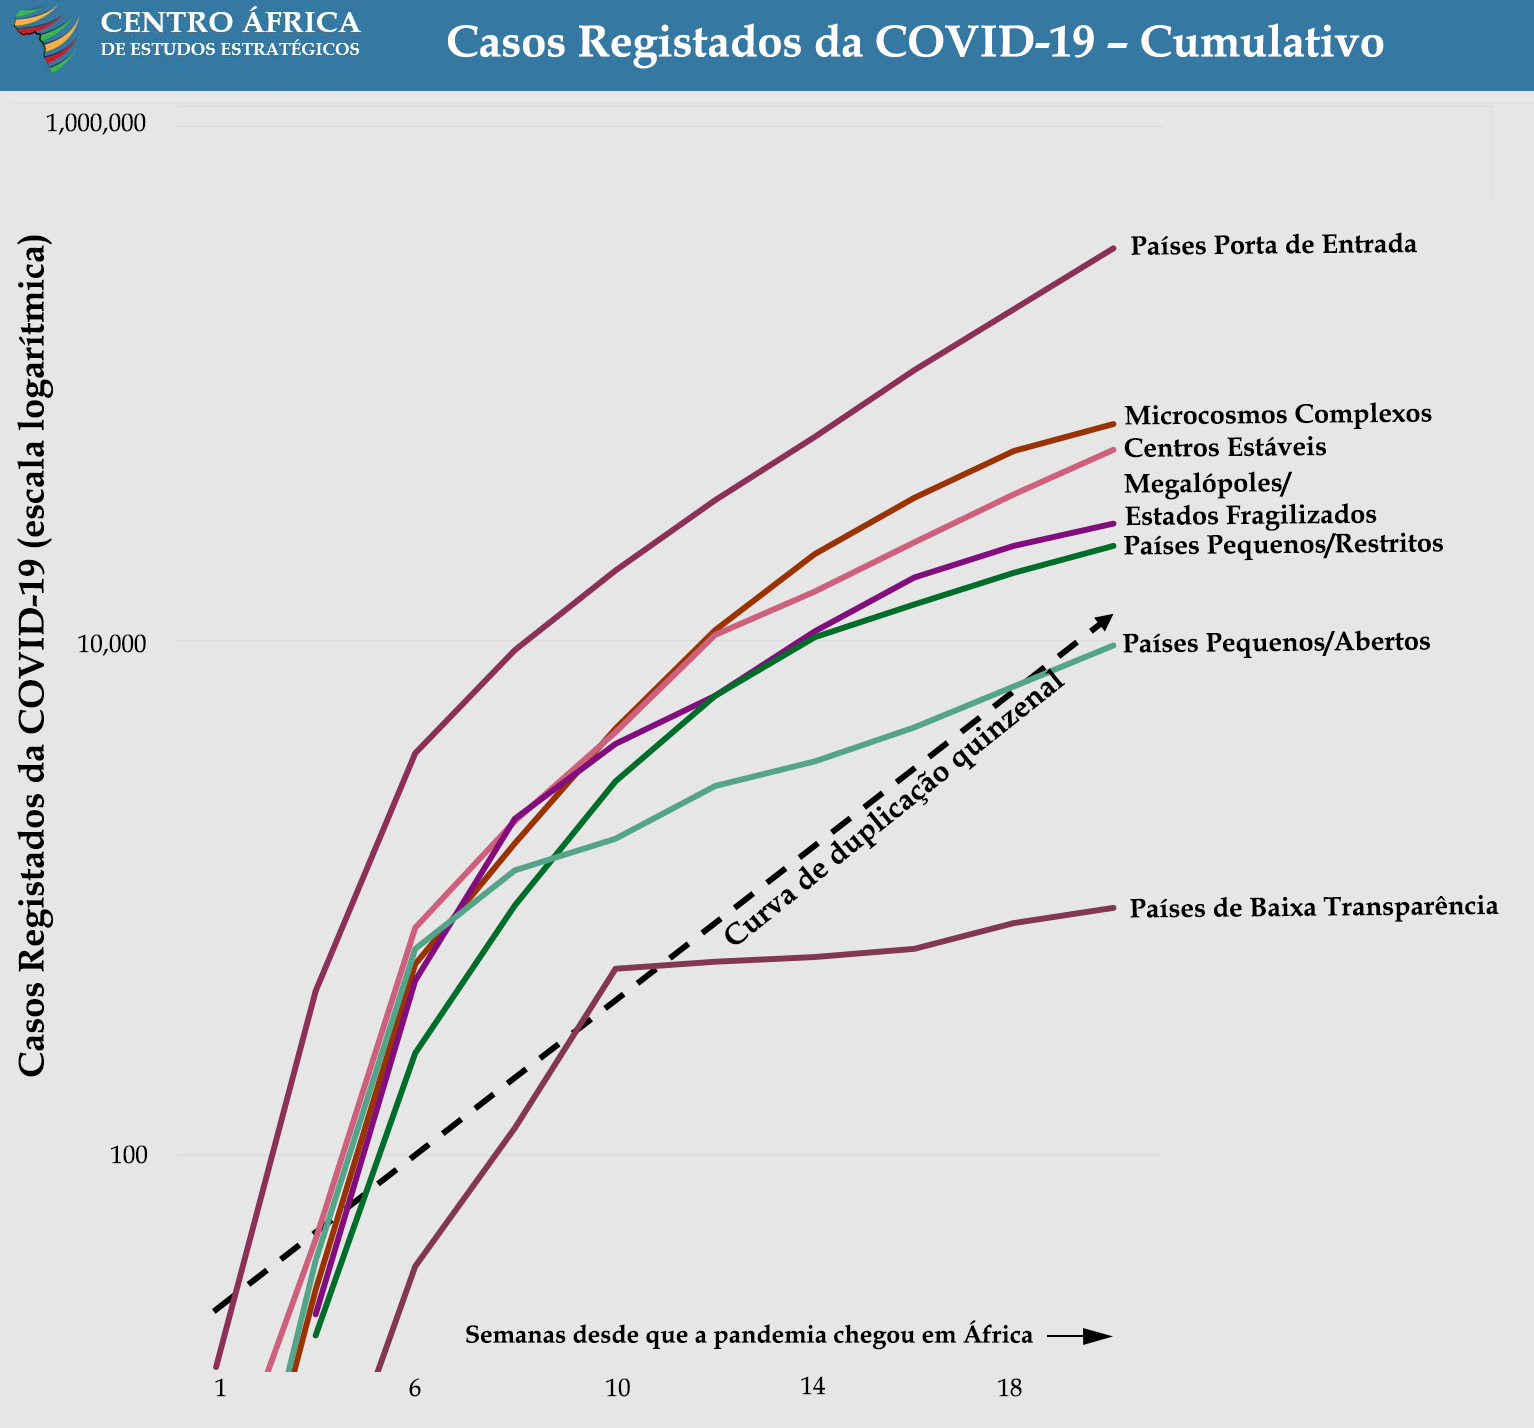 Log Graph of Cumulative Reported Cases of COVID-19 - COVID Landscapes